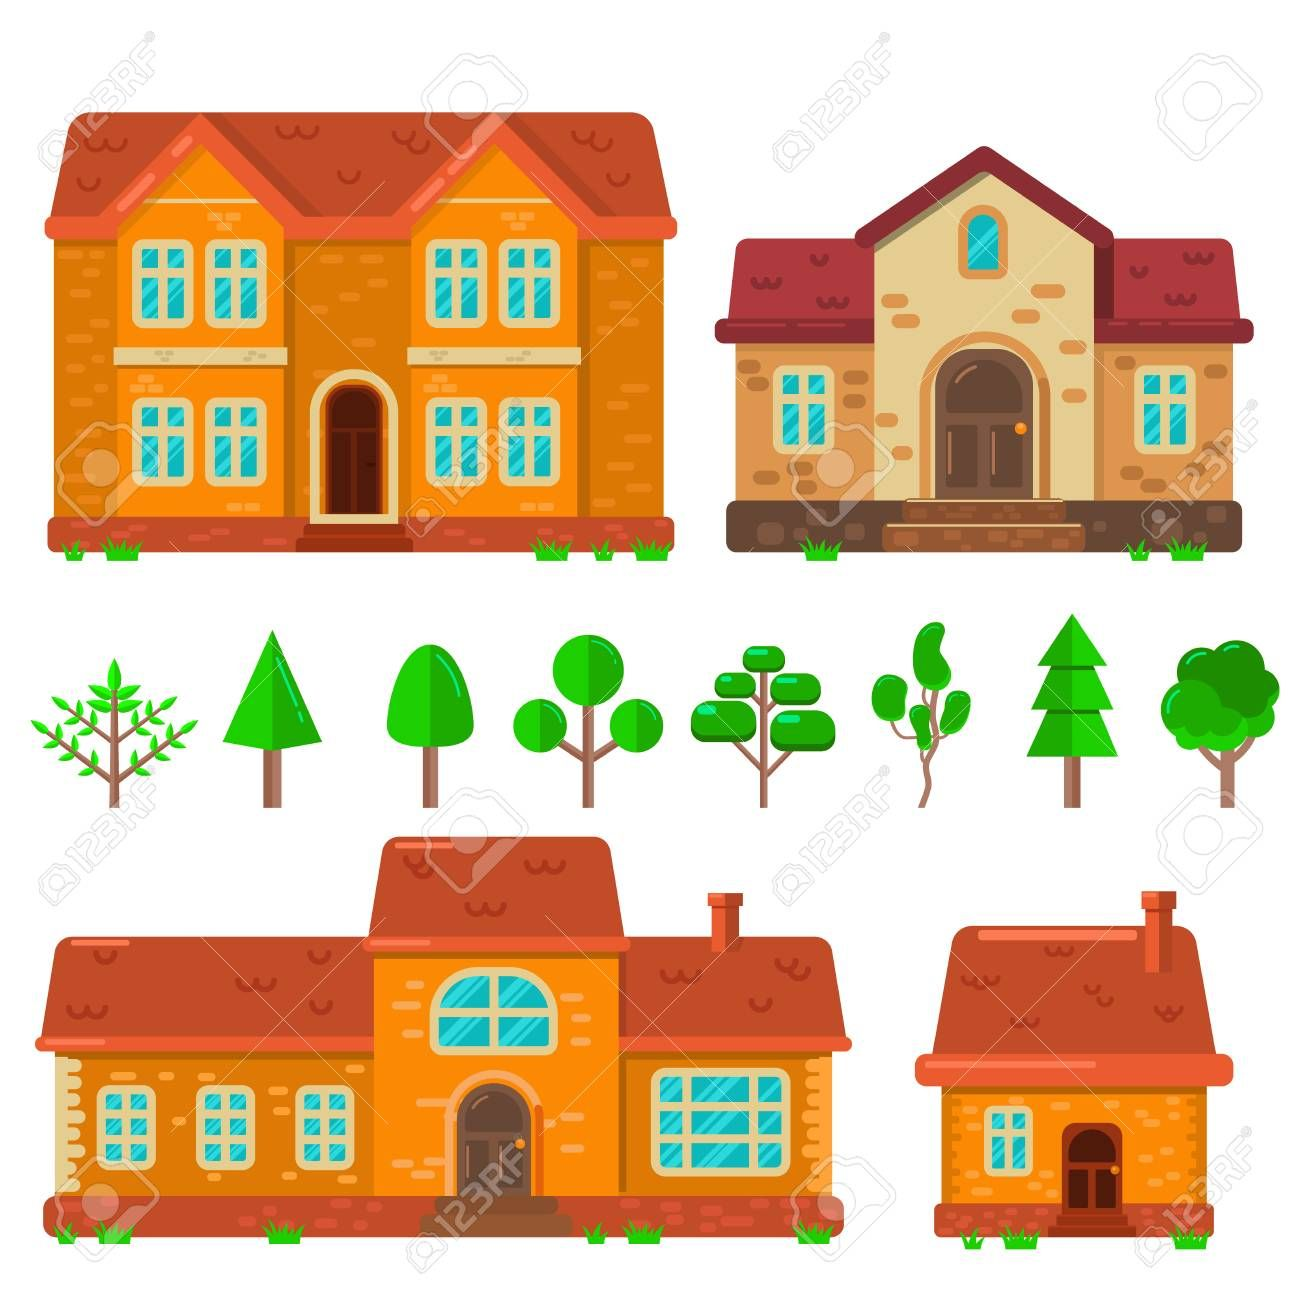 Set of houses illustrations in flat style Design element for poster banner  flyer motion design web page